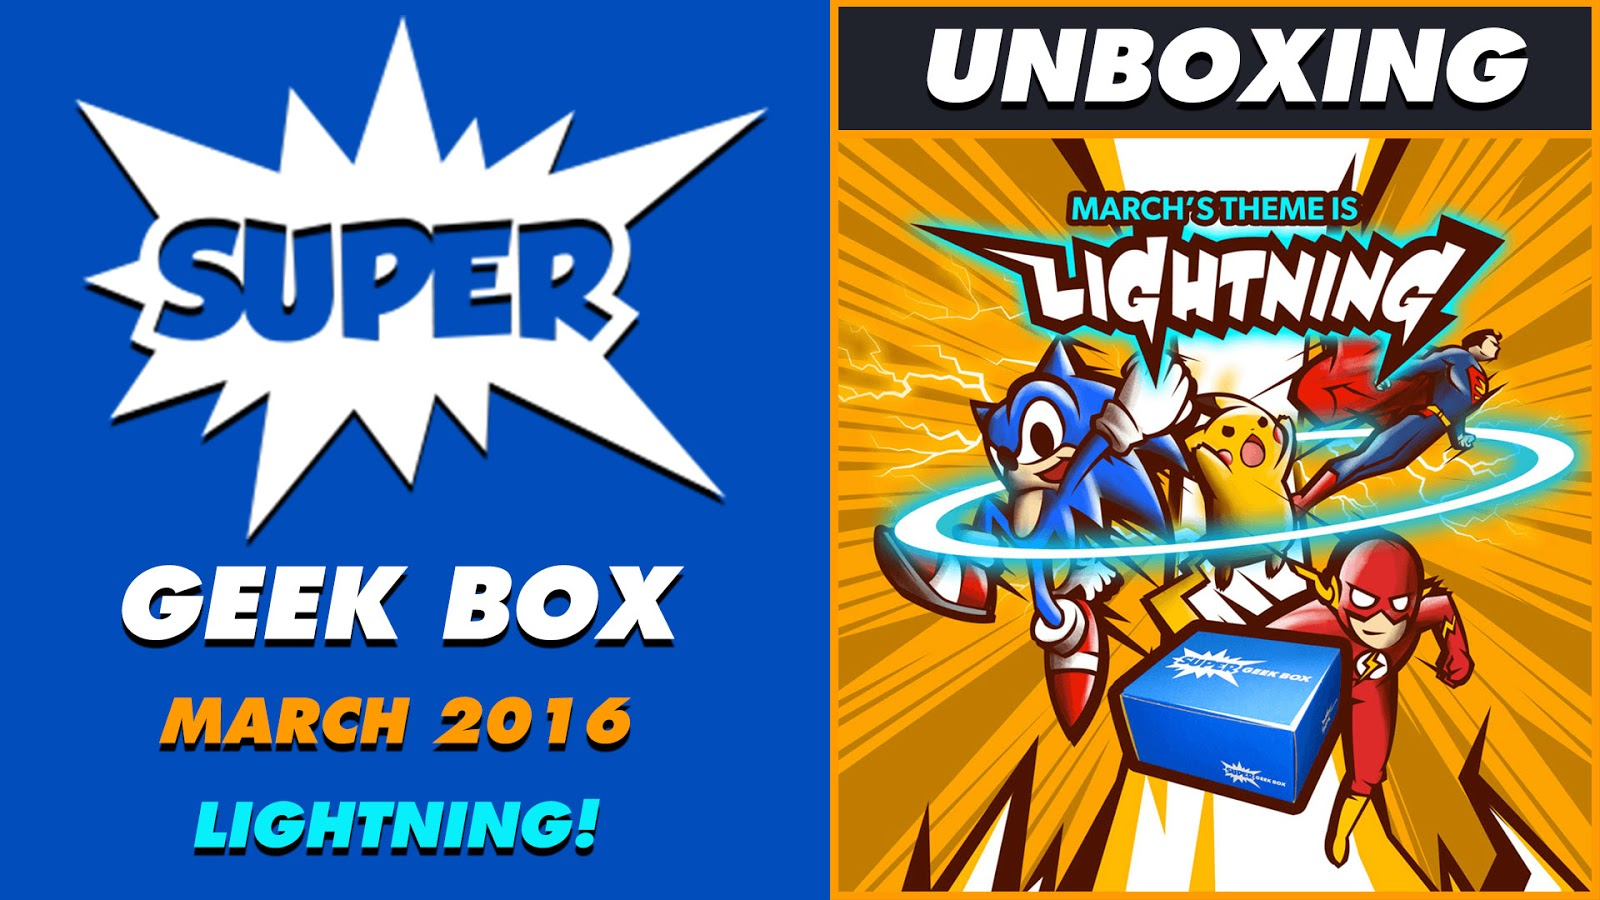 Unboxing Super Geek Box Lightning March 2016